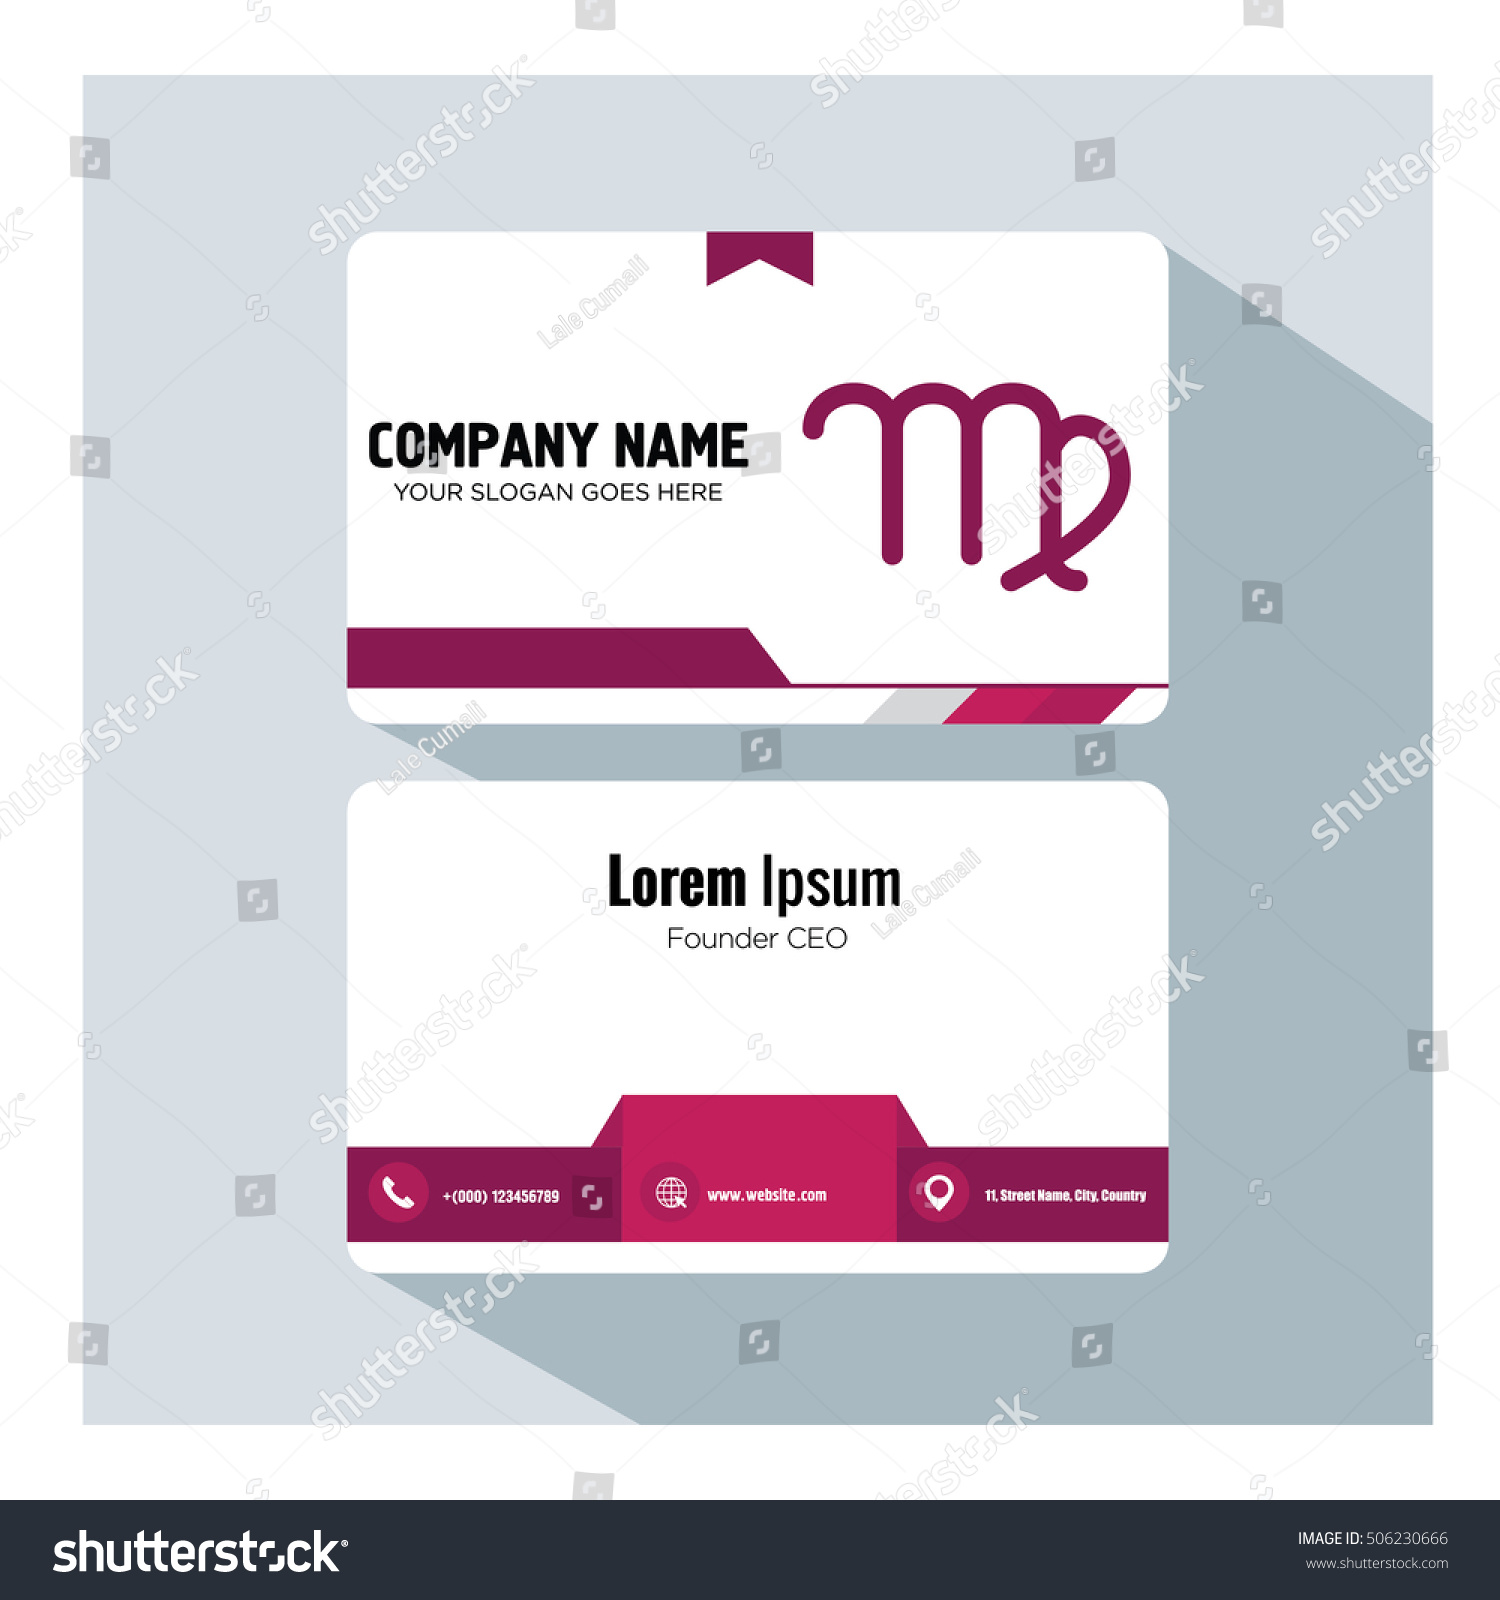 PowerPoint Business Card Templates  Google Sites